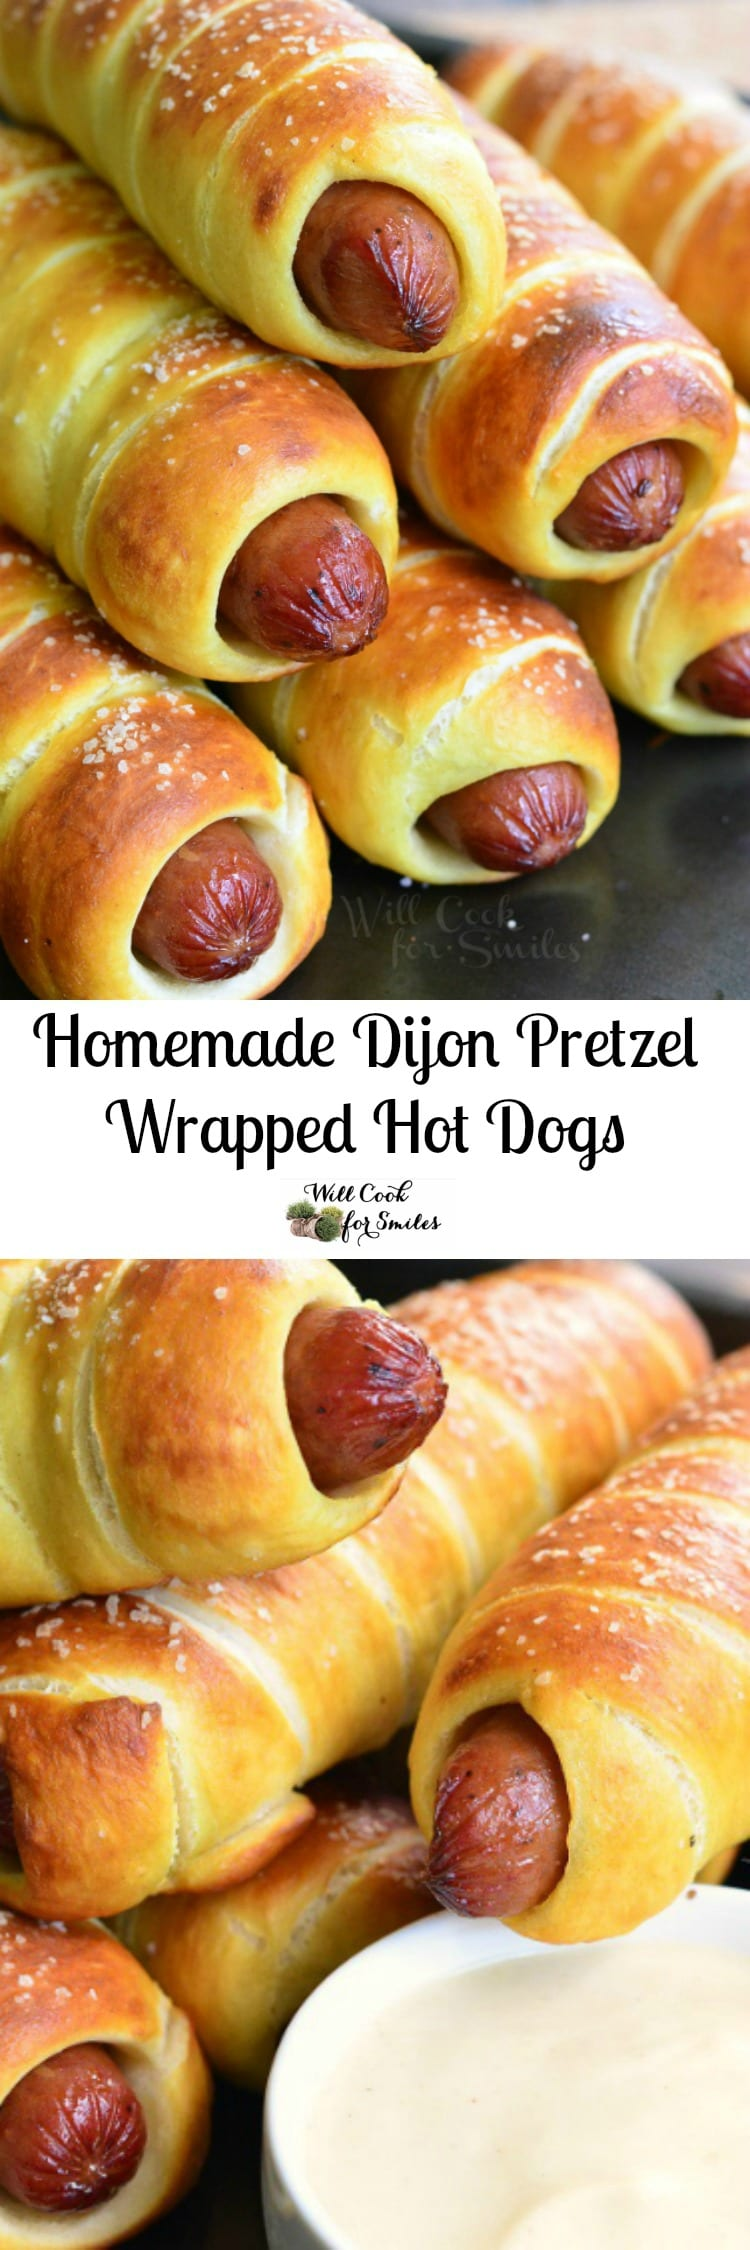 Homemade Dijon Pretzel Wrapped Hot Dogs with Maple Dijon Dipping Sauce! The BEST hot dogs in the world are the hot dogs that have been wrapped with soft, homemade Dijon pretzel